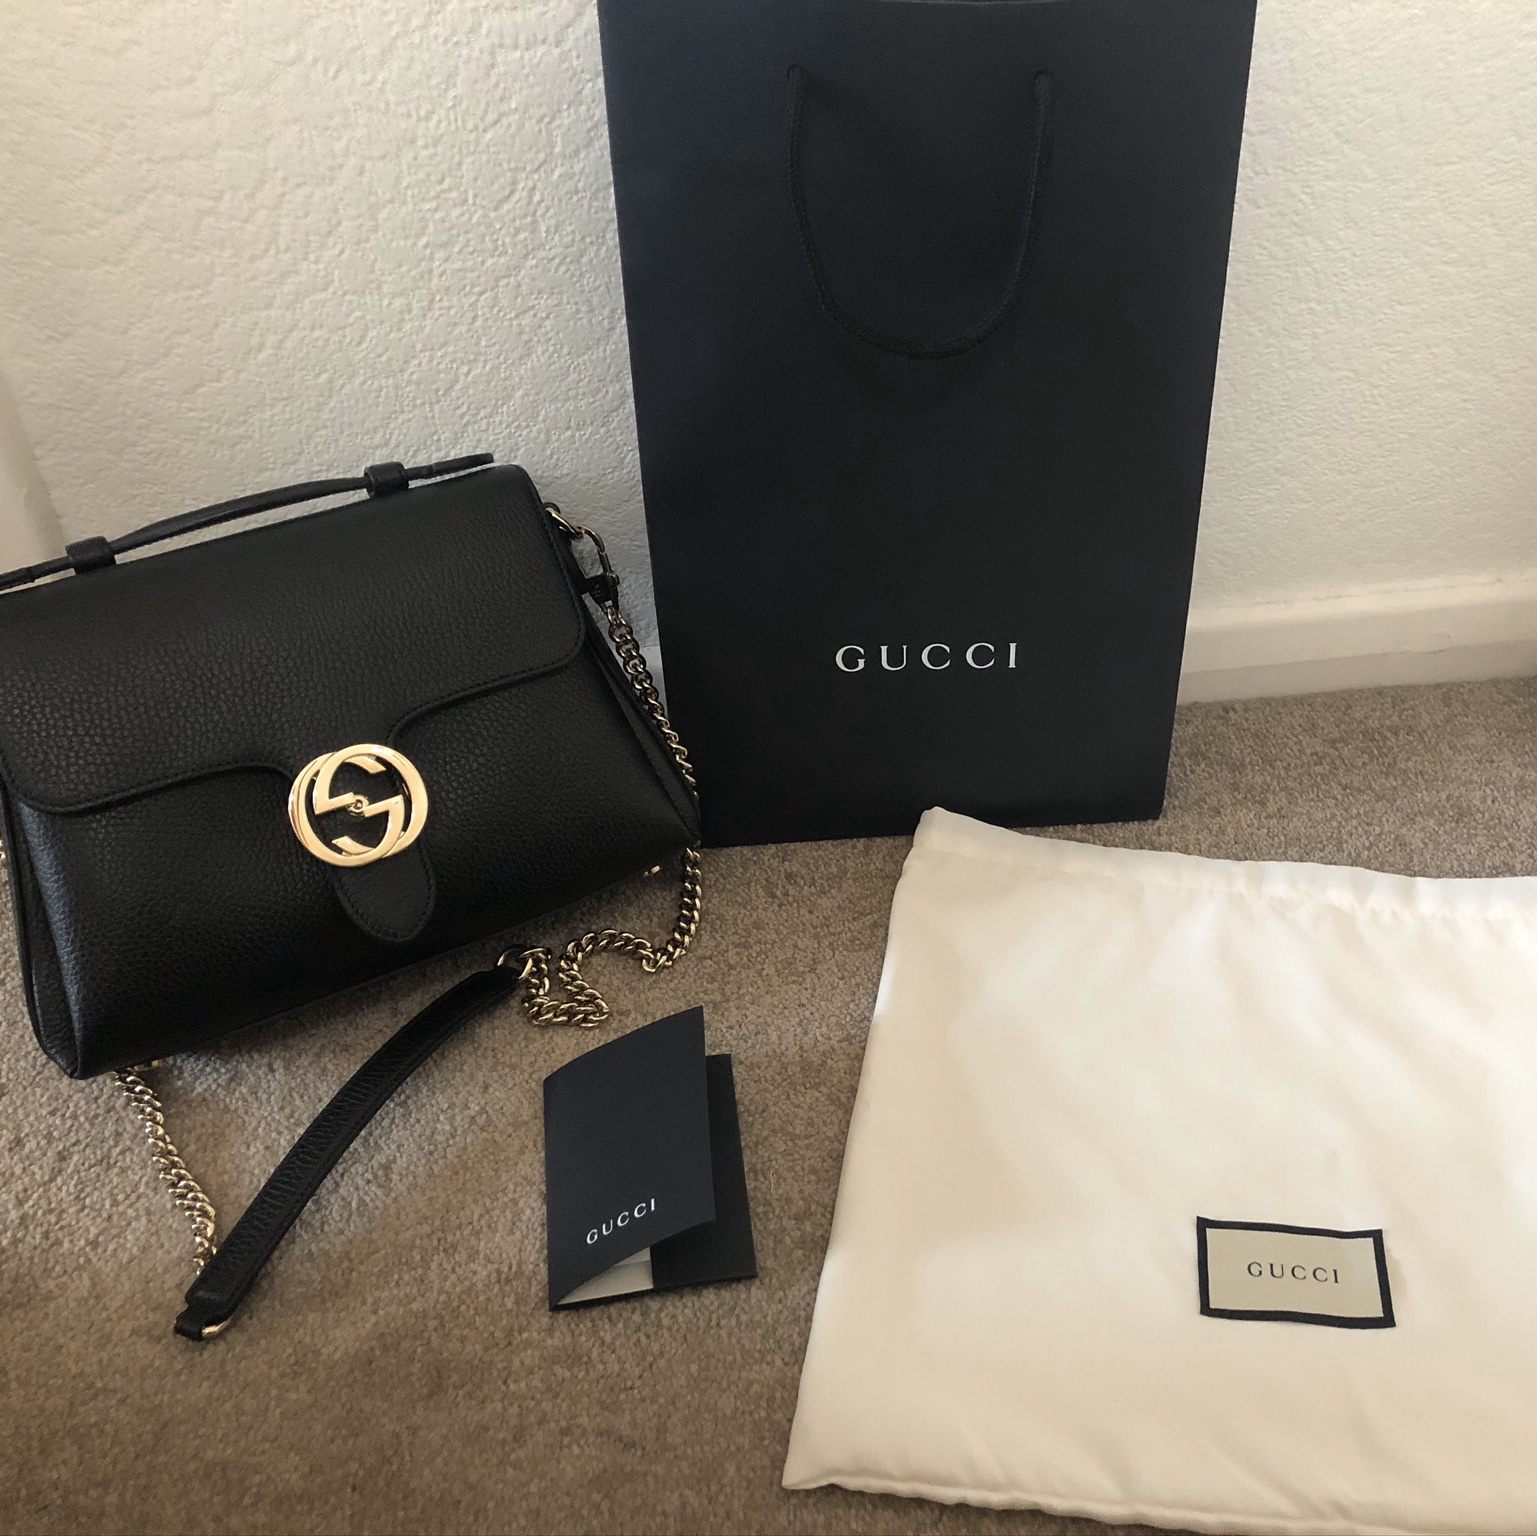 GUCCI CROSS BODY BLACK TEXTURED LEATHER BAG